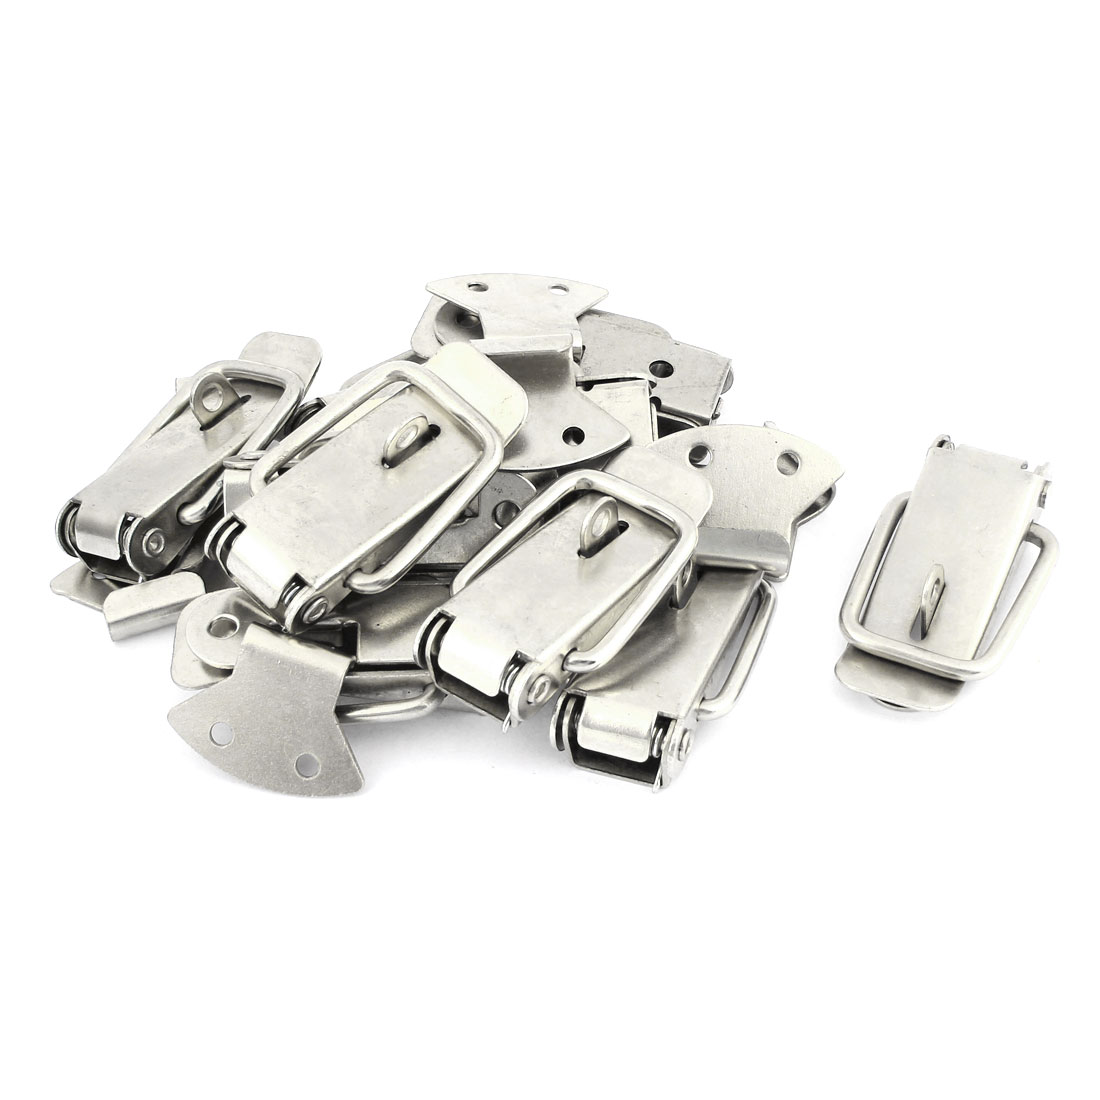 10 Sets Stainless Steel Spring Loaded Straight Loop Latch Catches 8.9cm